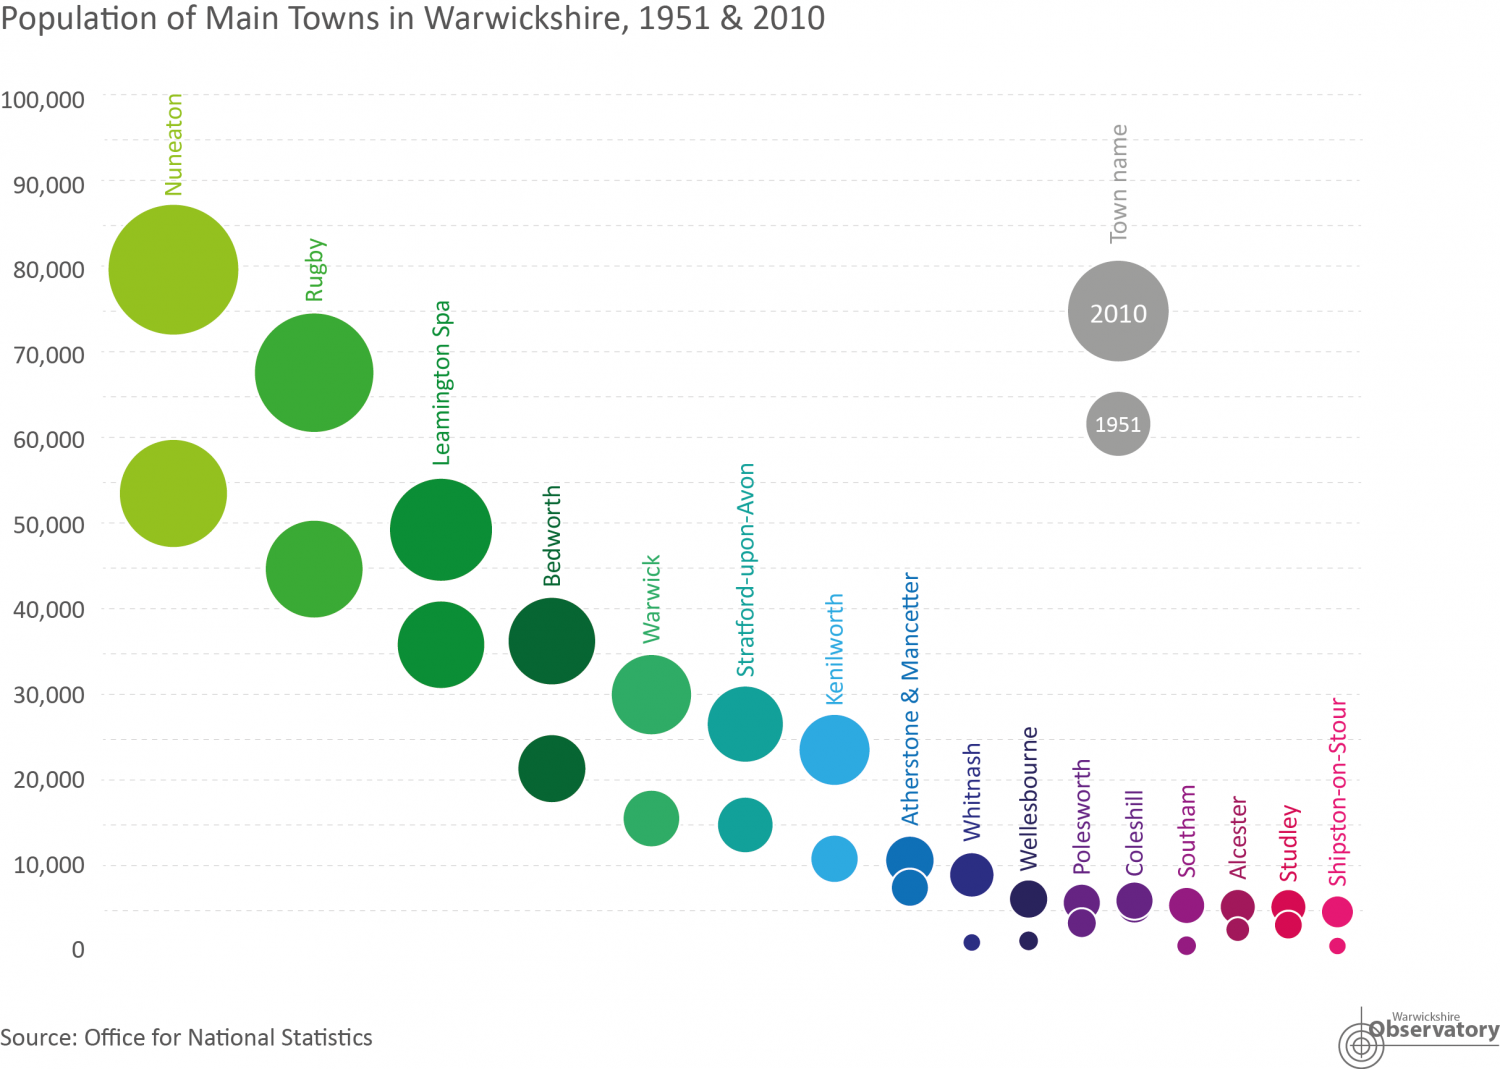 Jubilee: Growth in Warwickshire's Towns 1952 - 2012 Infographic